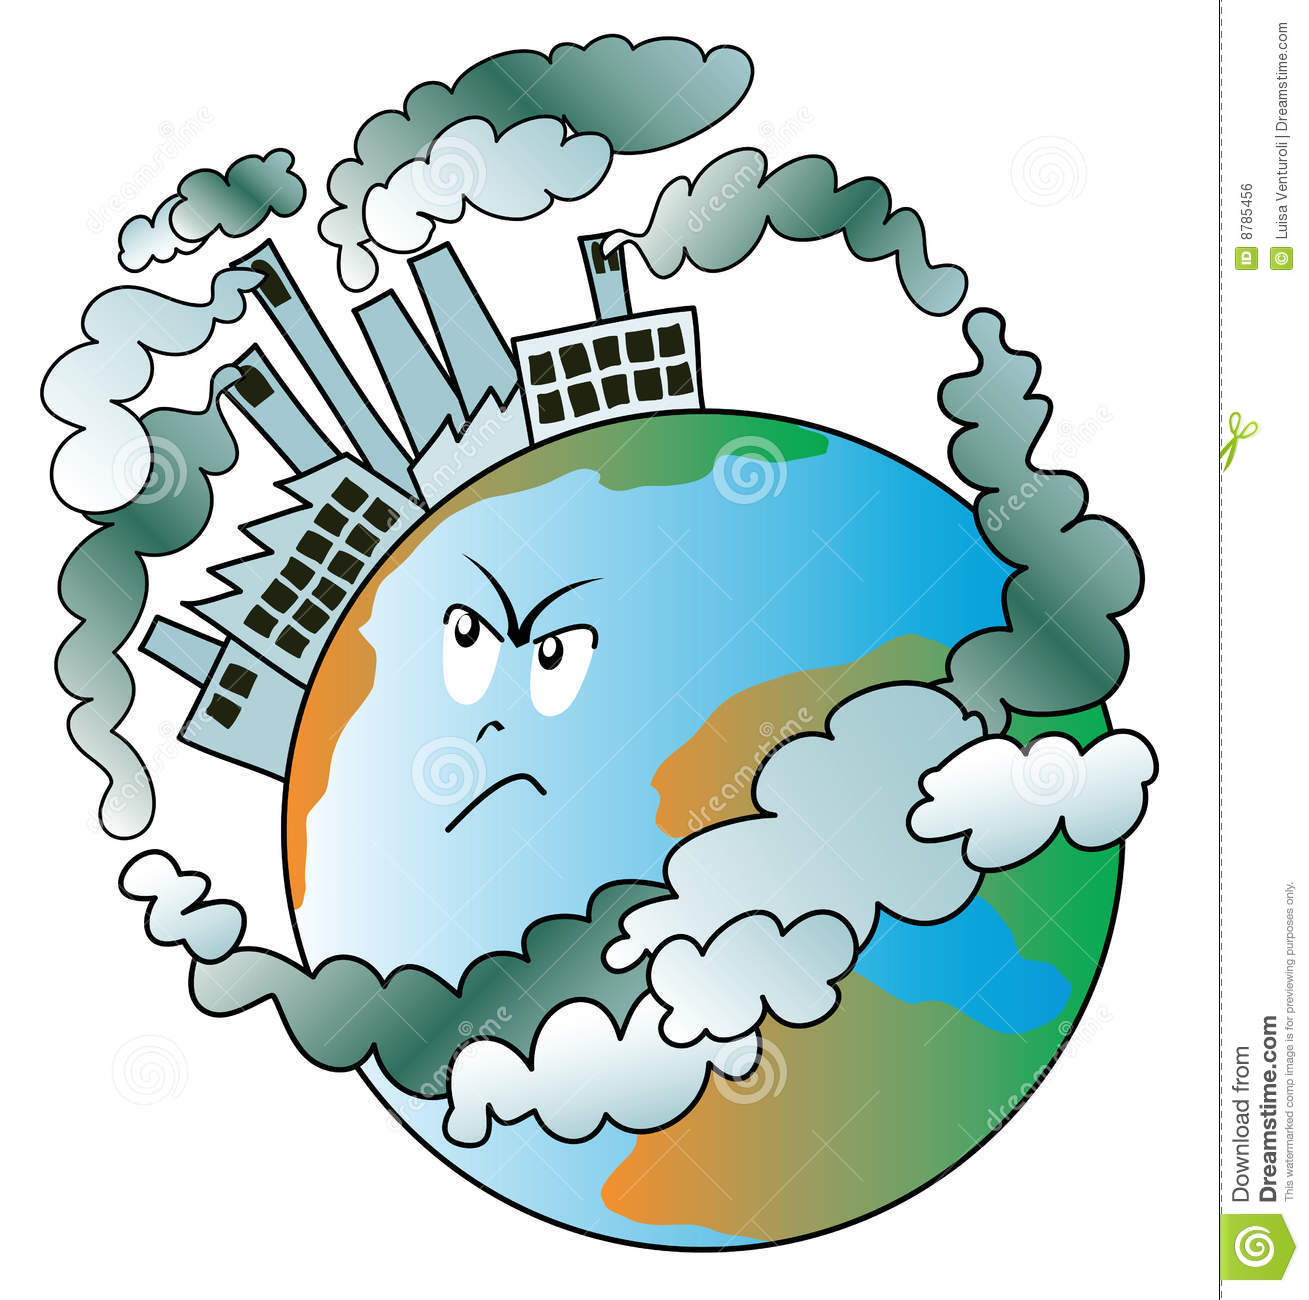 Air pollution images clip art.